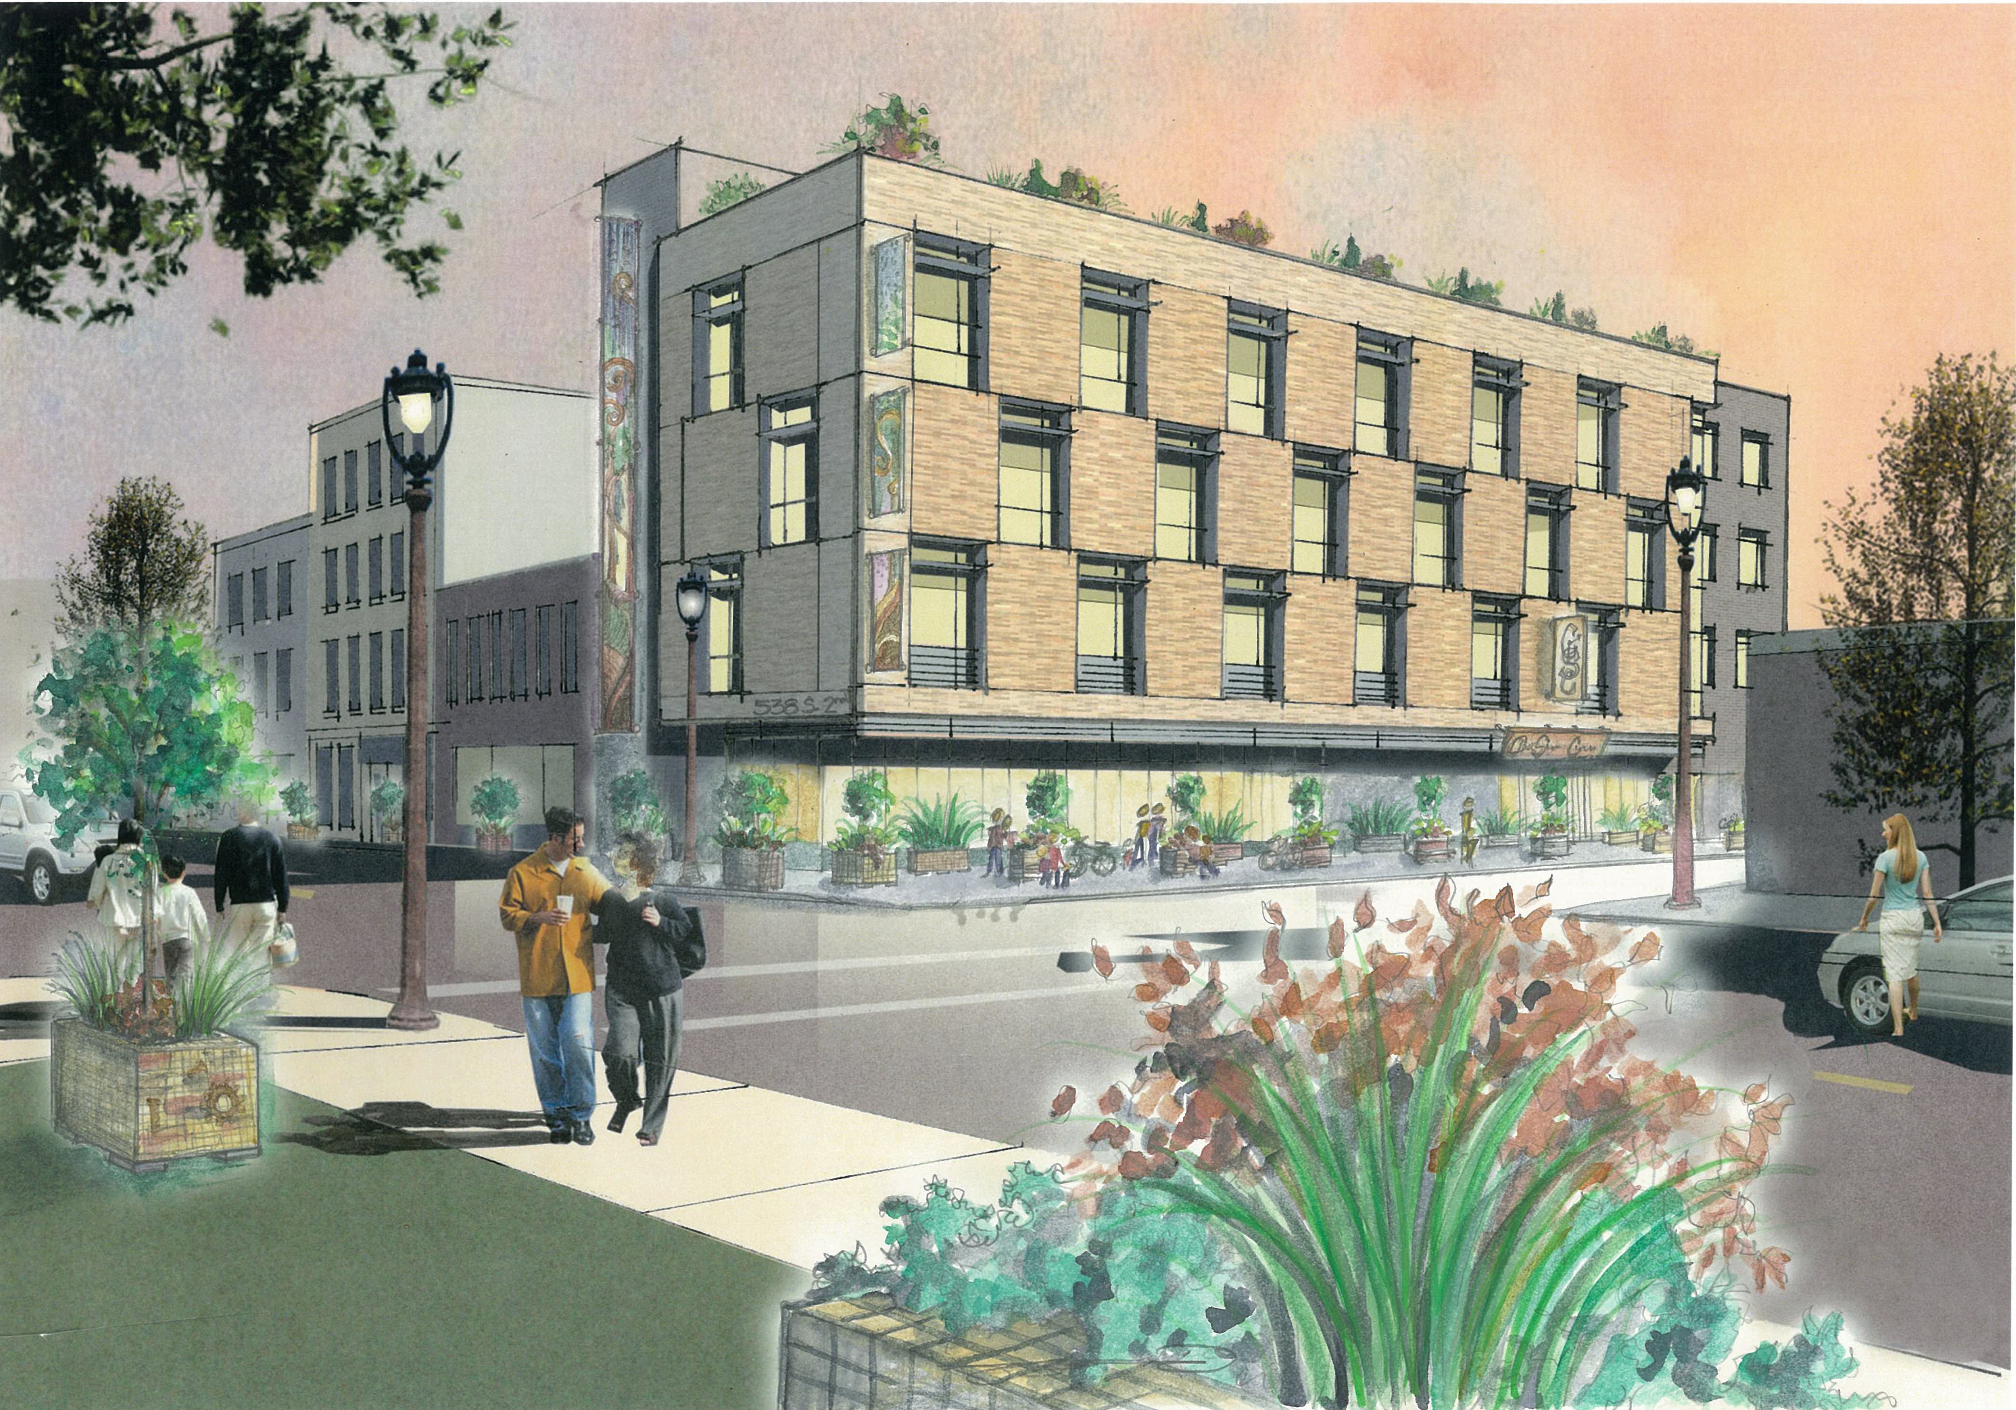 Green Development Planned for S. 2nd Street